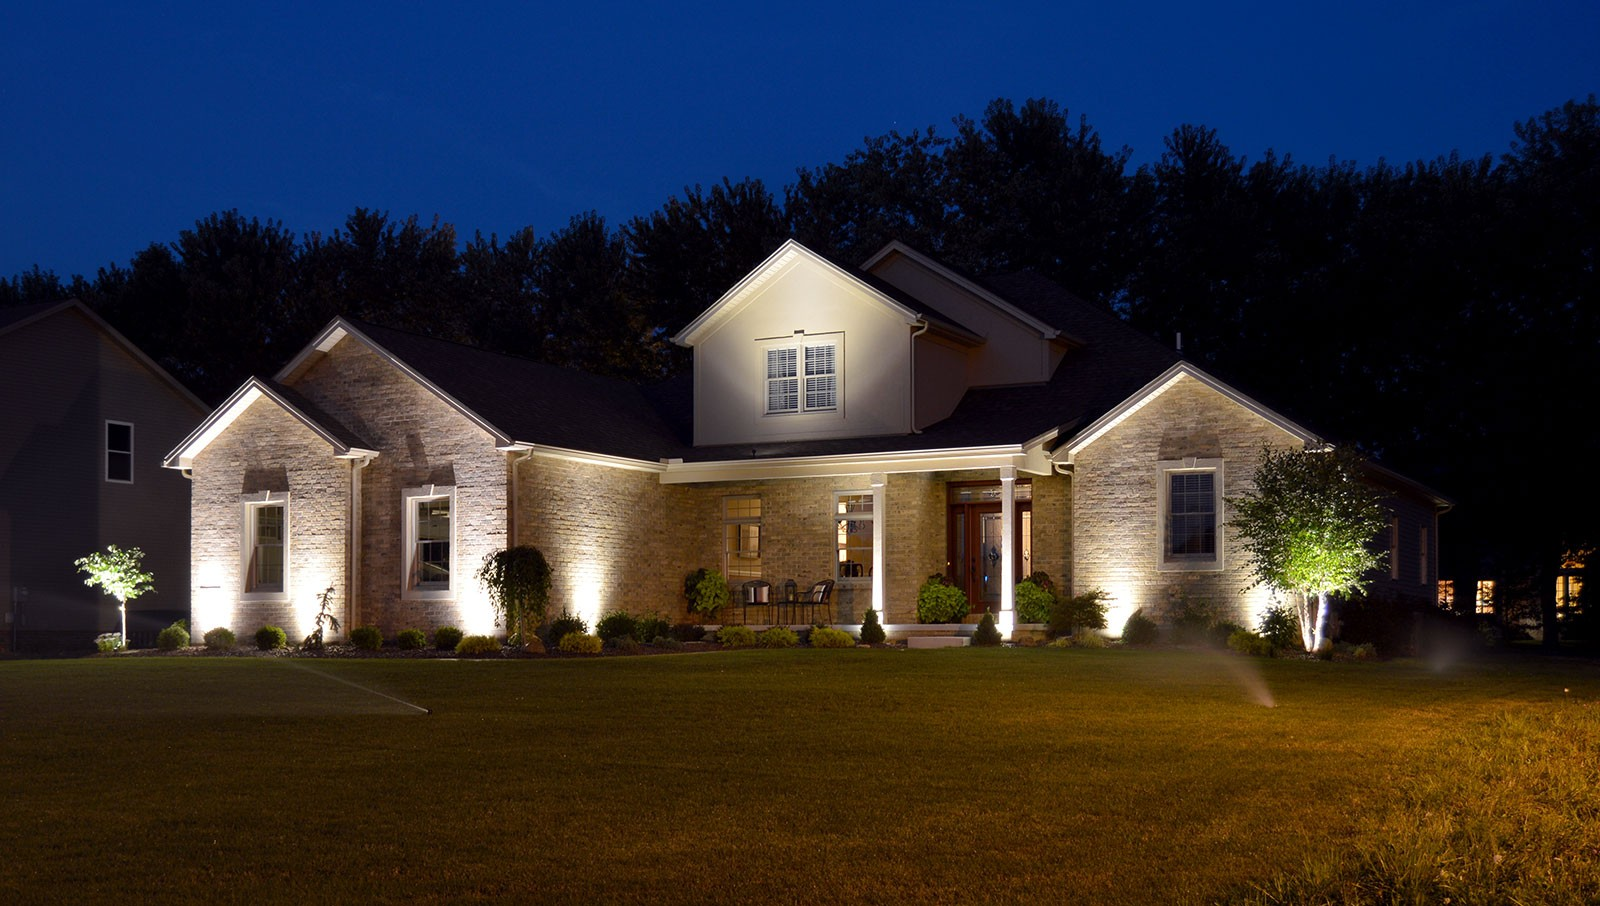 Outdoor lighting-Lakeland FL Outdoor Lighting Installers-We Offer Outdoor Lighting Services, Landscape Lighting, Low Voltage Lighting, Outdoor LED landscape Lighting, Holiday Lighting, Christmas Lighting, Tree Lighting, Canopy Lighting, Residential outdoor Lighting, Commercial outdoor Lighting, Safety Lighting, Path and Garden Lighting, Mini lights and flood lights, Landscape Lighting installation, Outdoor spot lights, Outdoor LED garden Lighting, Dock Lighting, Accent lights, Deck and patio lights, Security lights, Underwater Lighting, Tree upLighting, Outdoor Lighting repair services, and more.